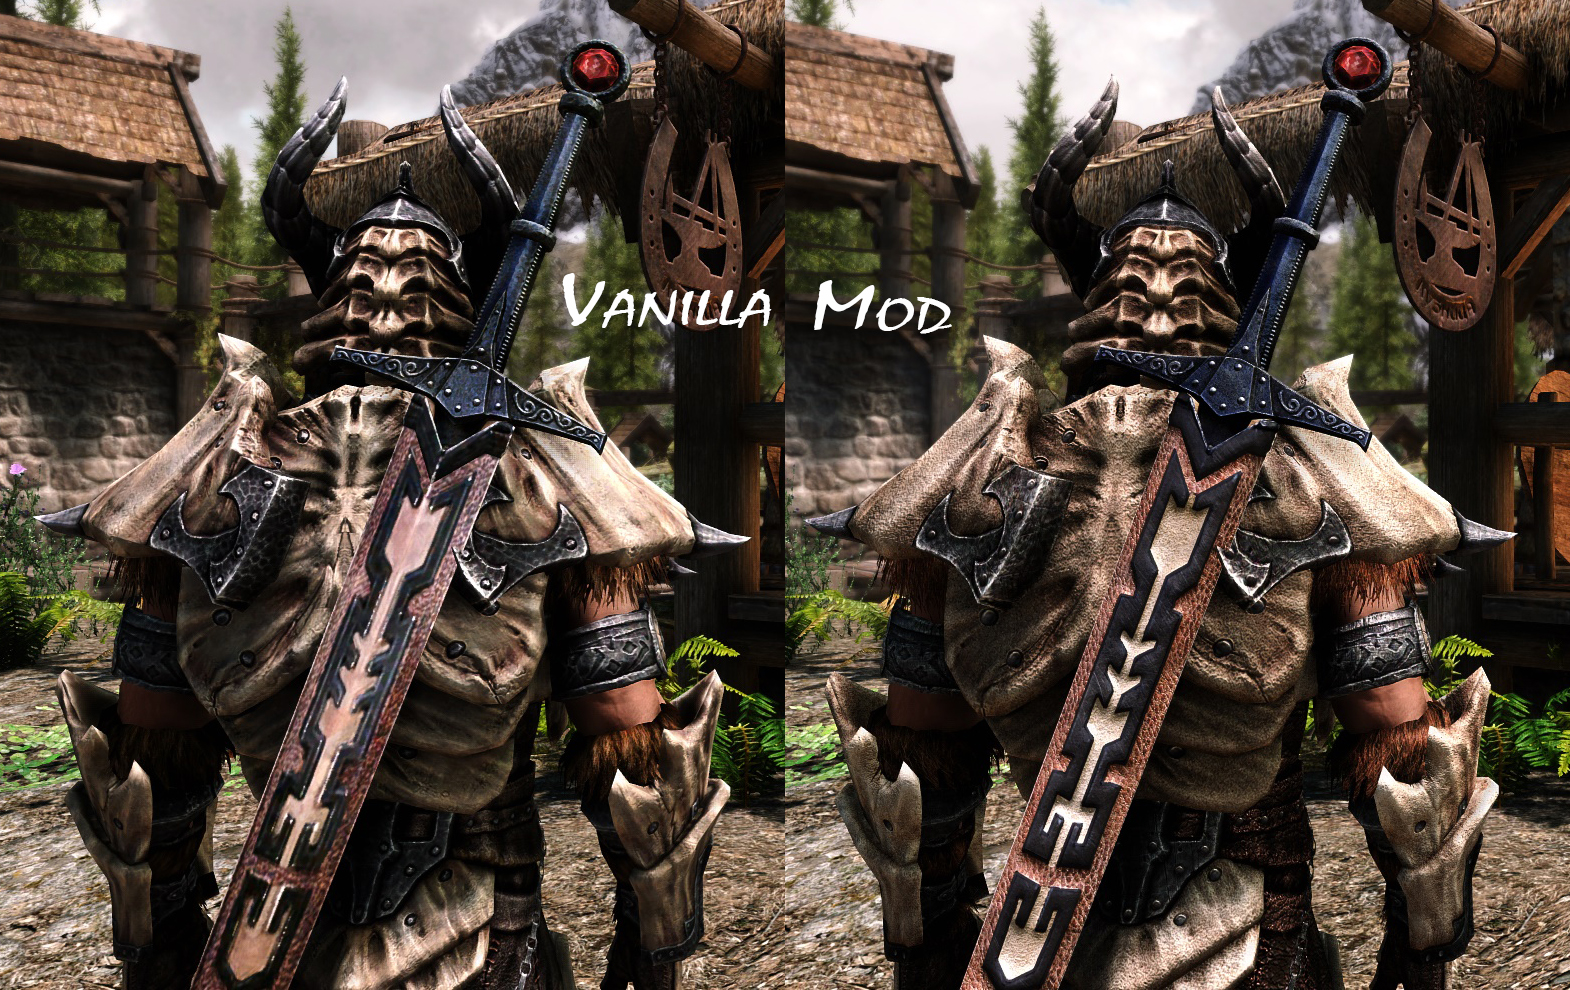 Better Textures Dragon Armor And Weapons Skyrim Special Edition Mods Dragon knight armor is a heavy armor set added by the mod immersive armors. better textures dragon armor and